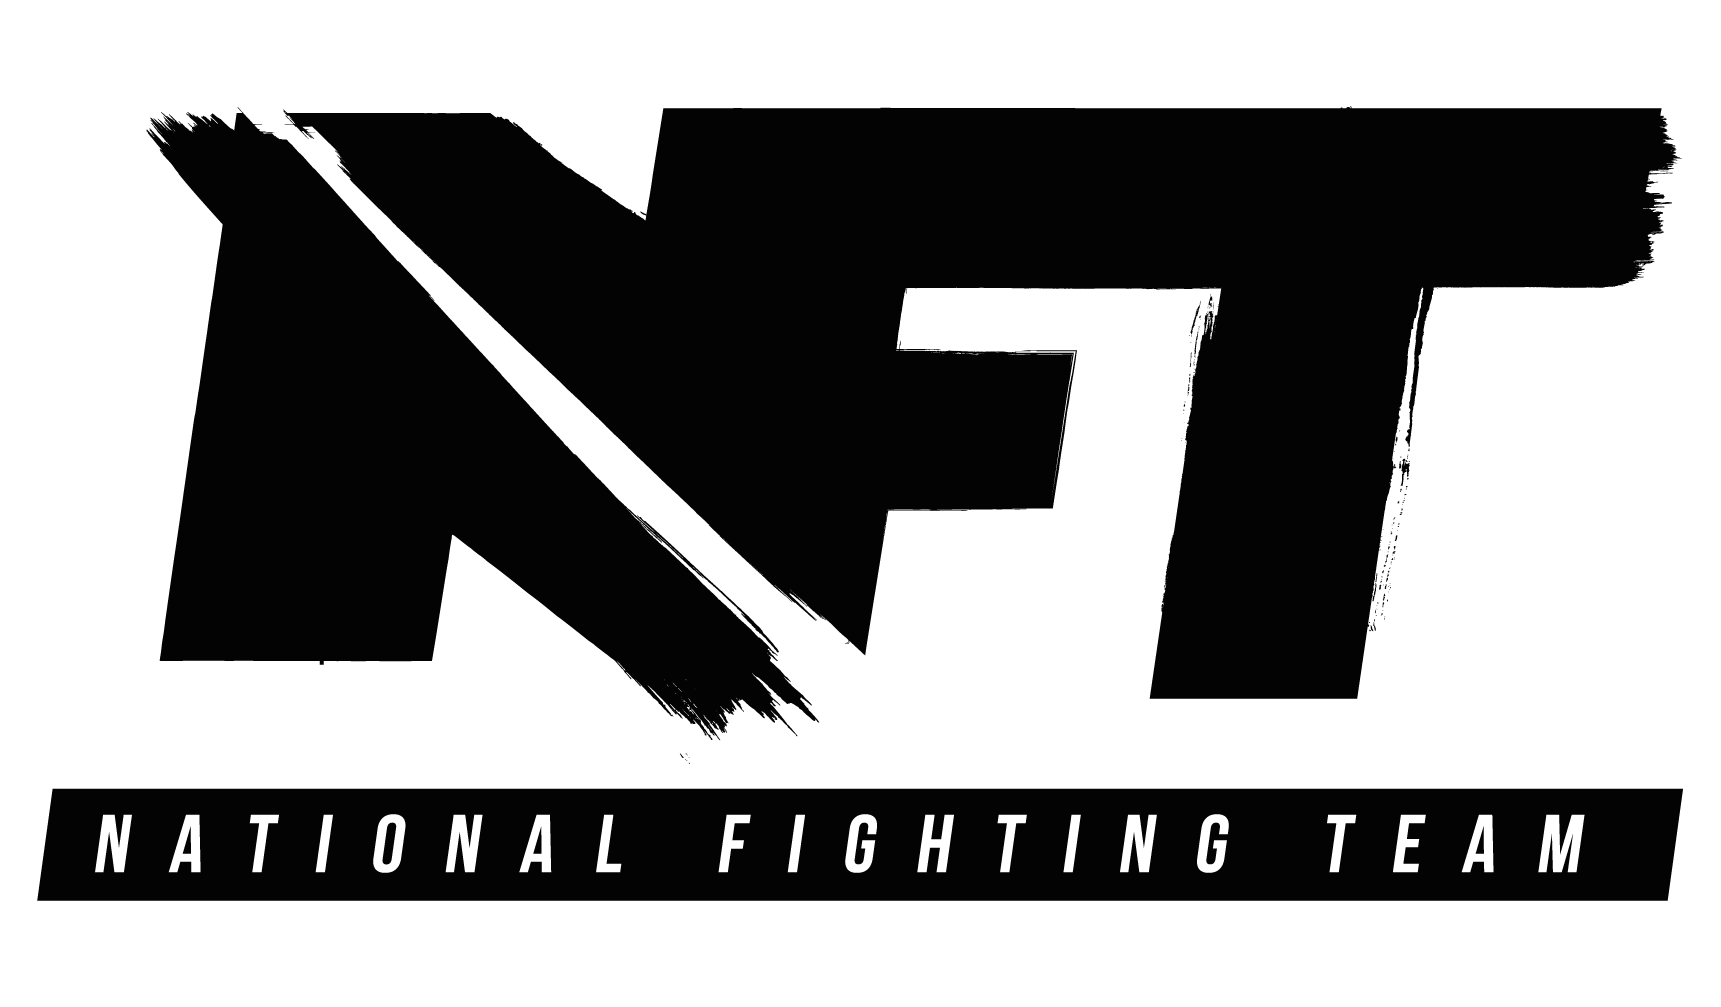 Logo des MMA/Kampfsport Studios National Fighting Team, NFT Gym aus Krefeld, Partner von FEFLOGX Sportswear.